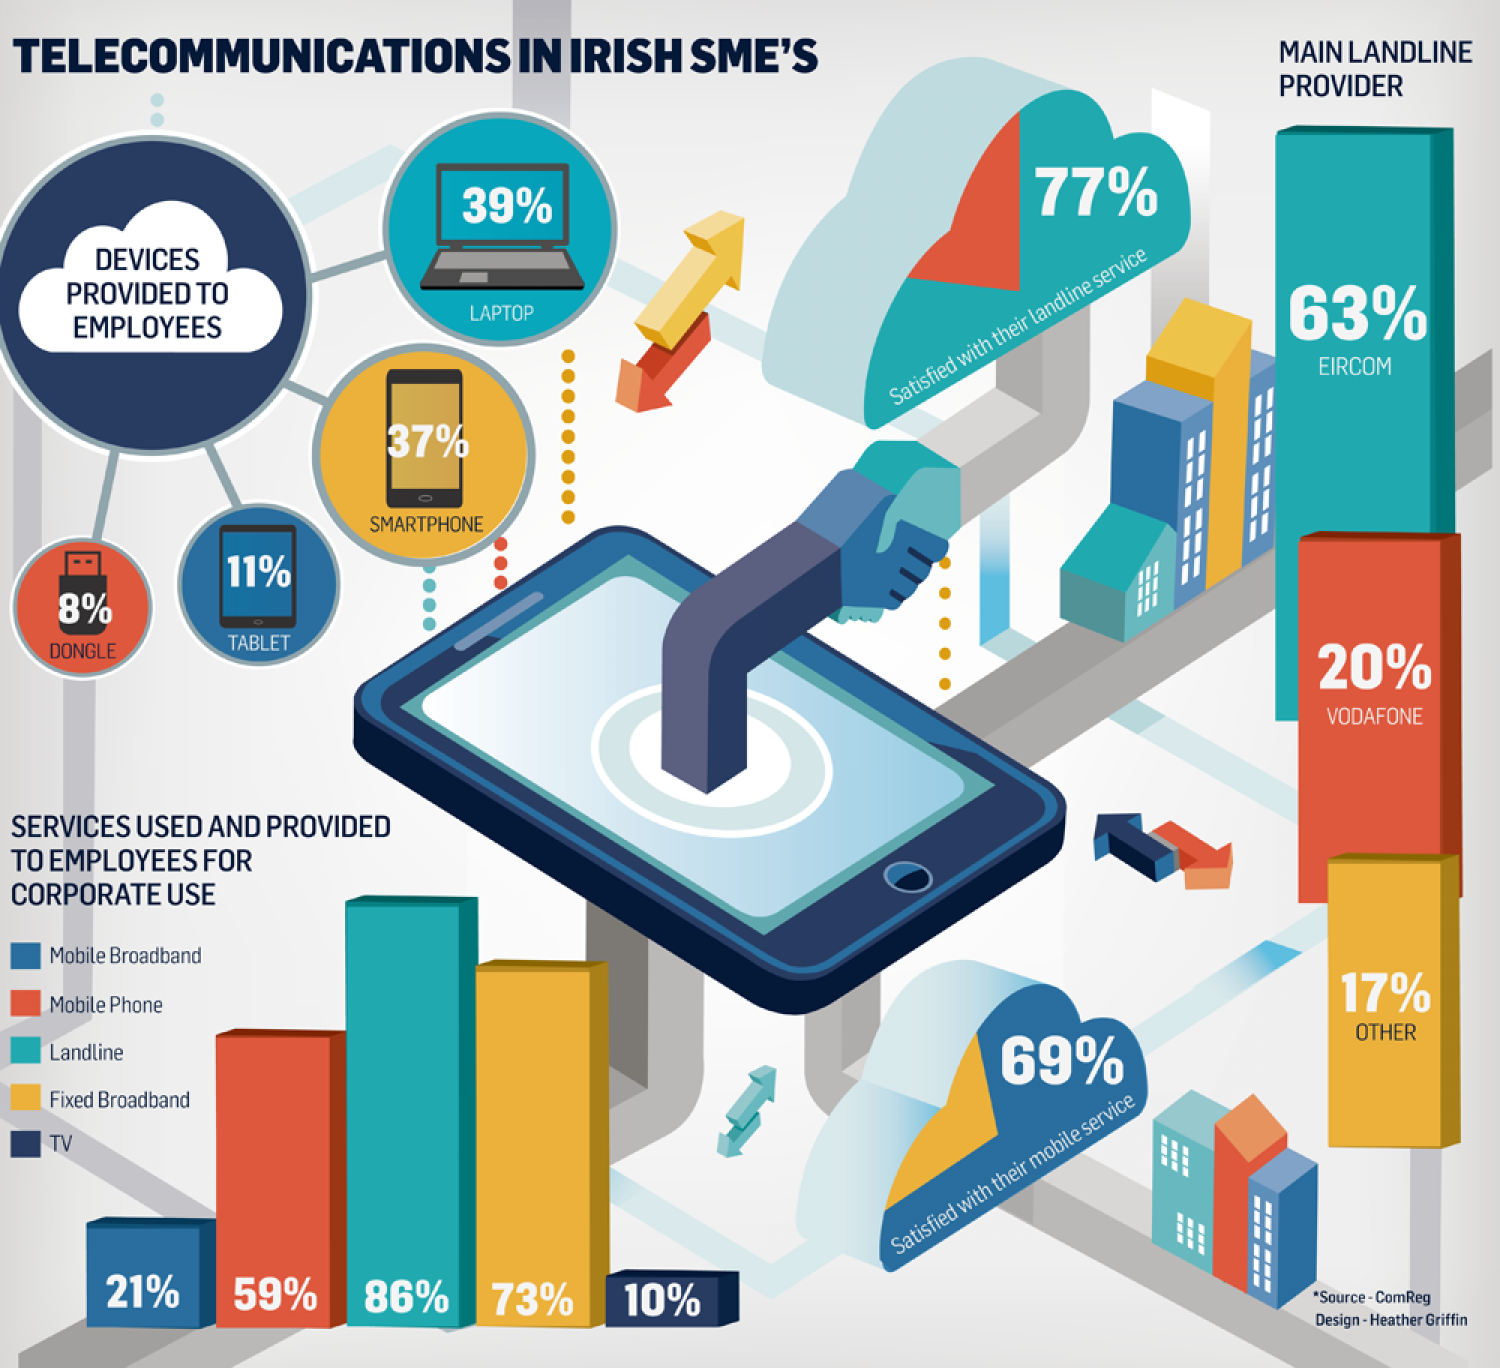 Telecommunications in Irish SME's Infographic